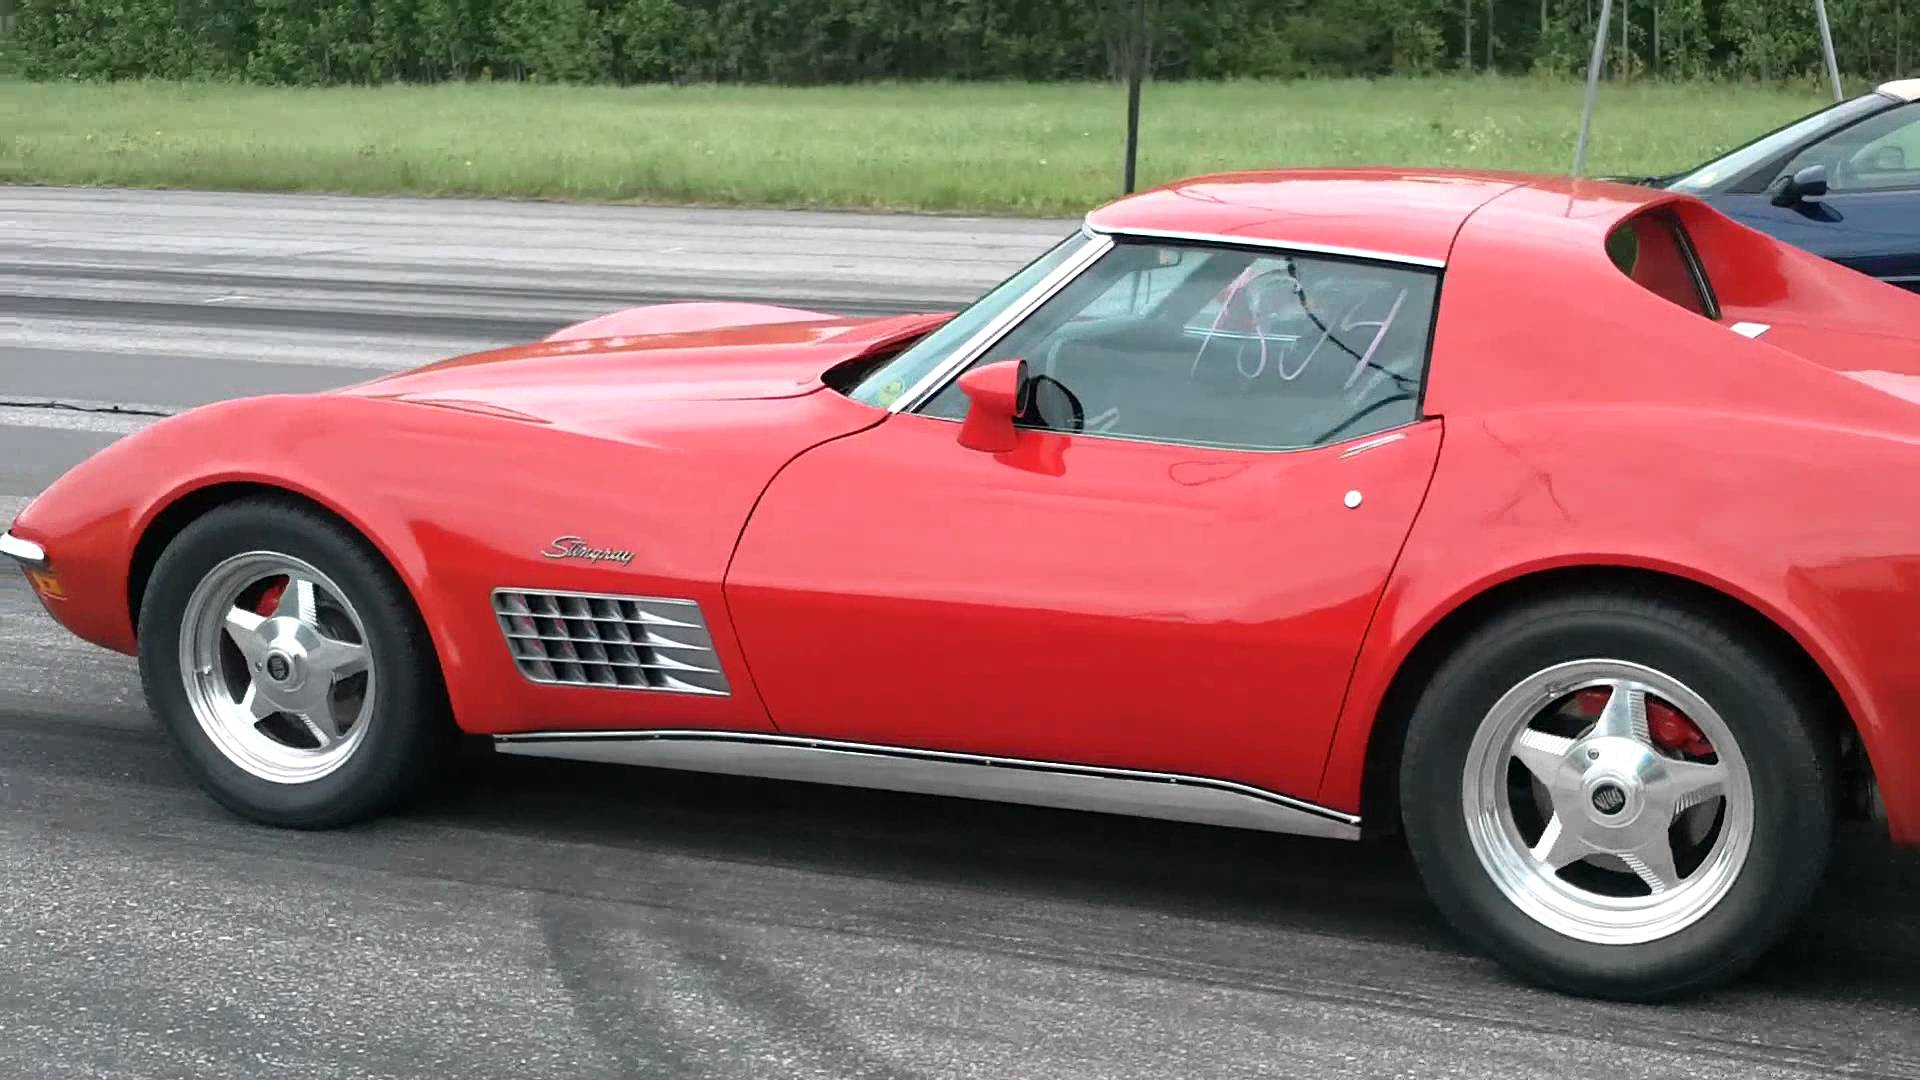 1971 Corvette 383 cui 450hp dragrace on Malmby Fairway